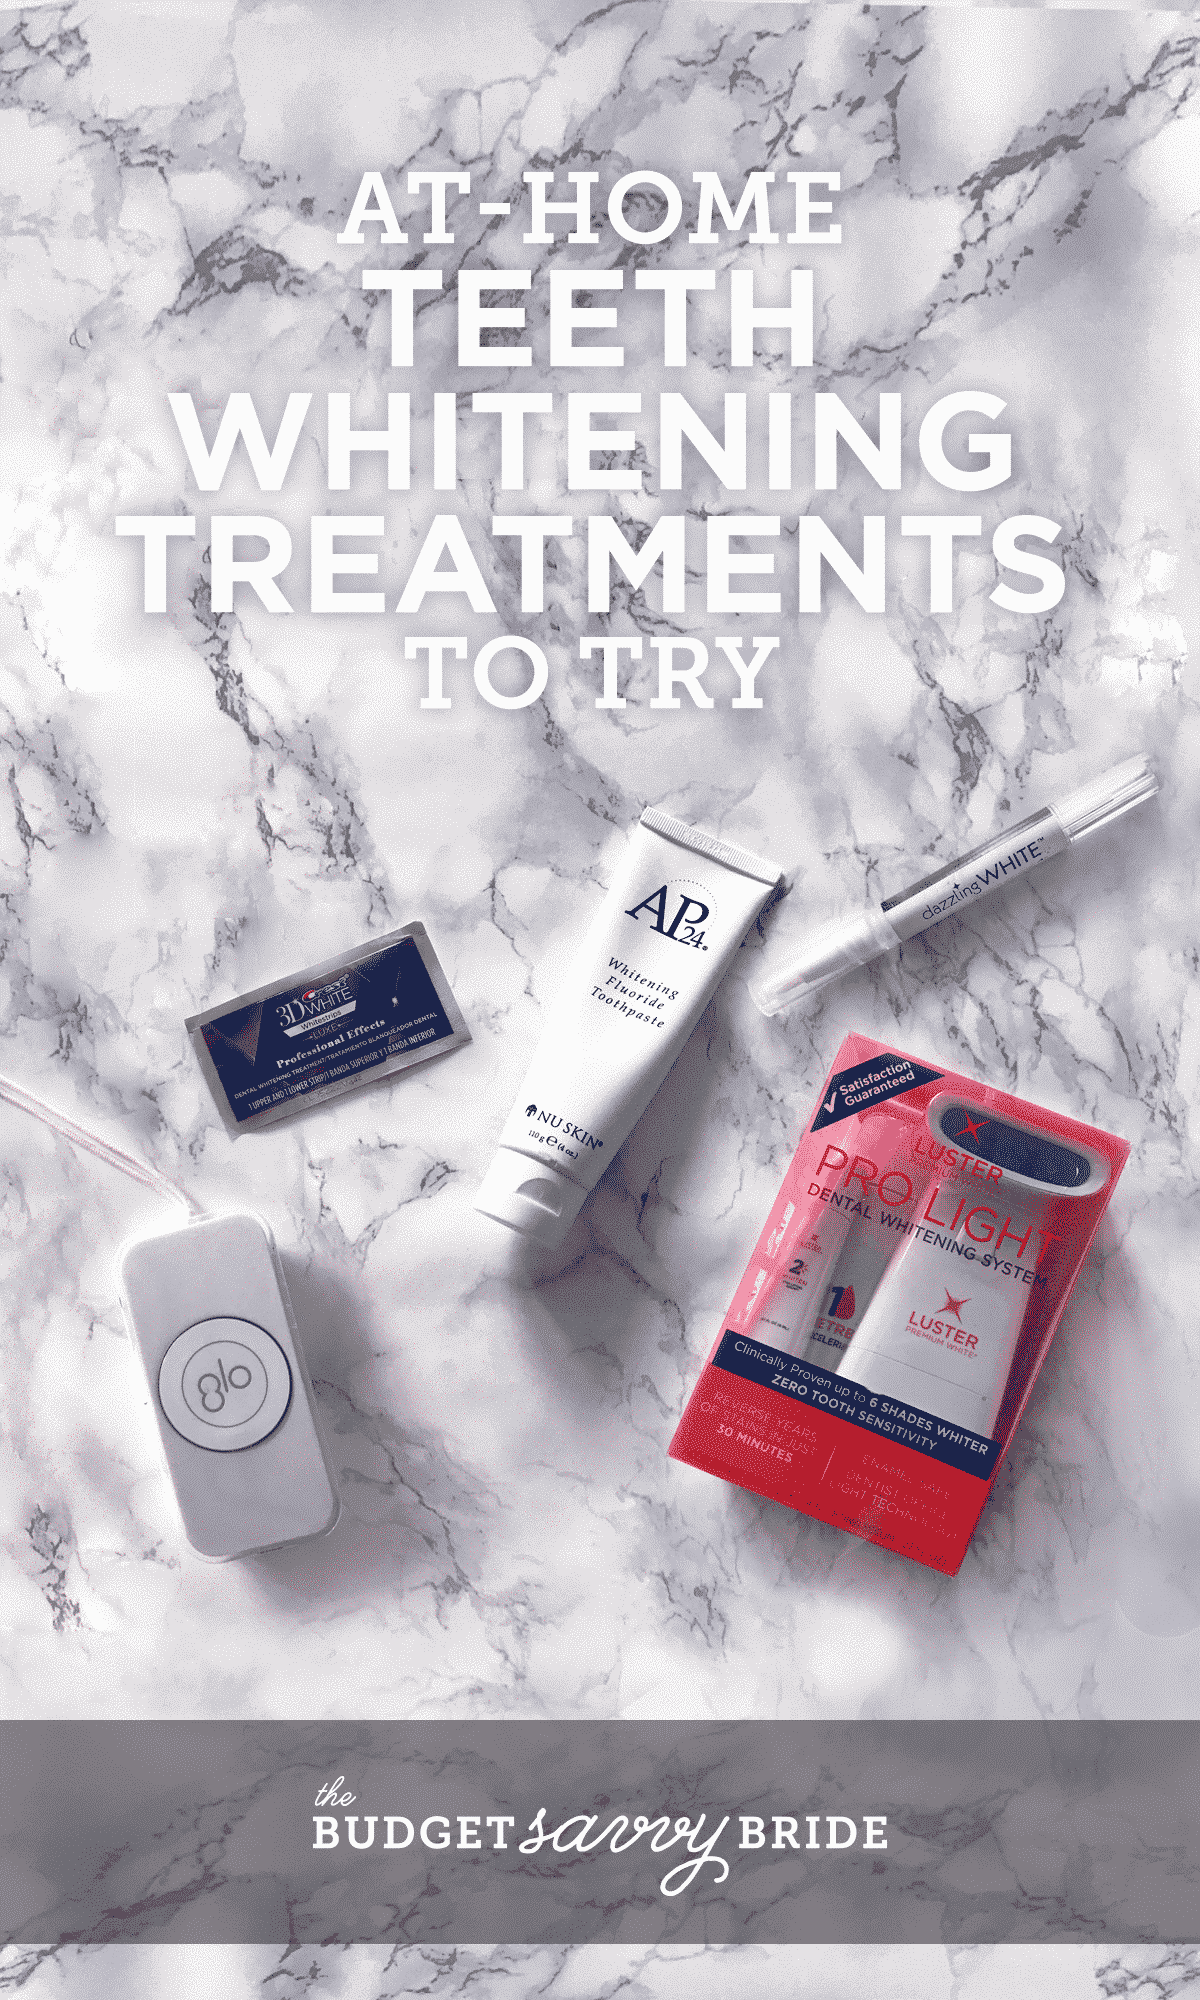 At-home teeth whitening treatments to try -- get your smile bright for your big day!